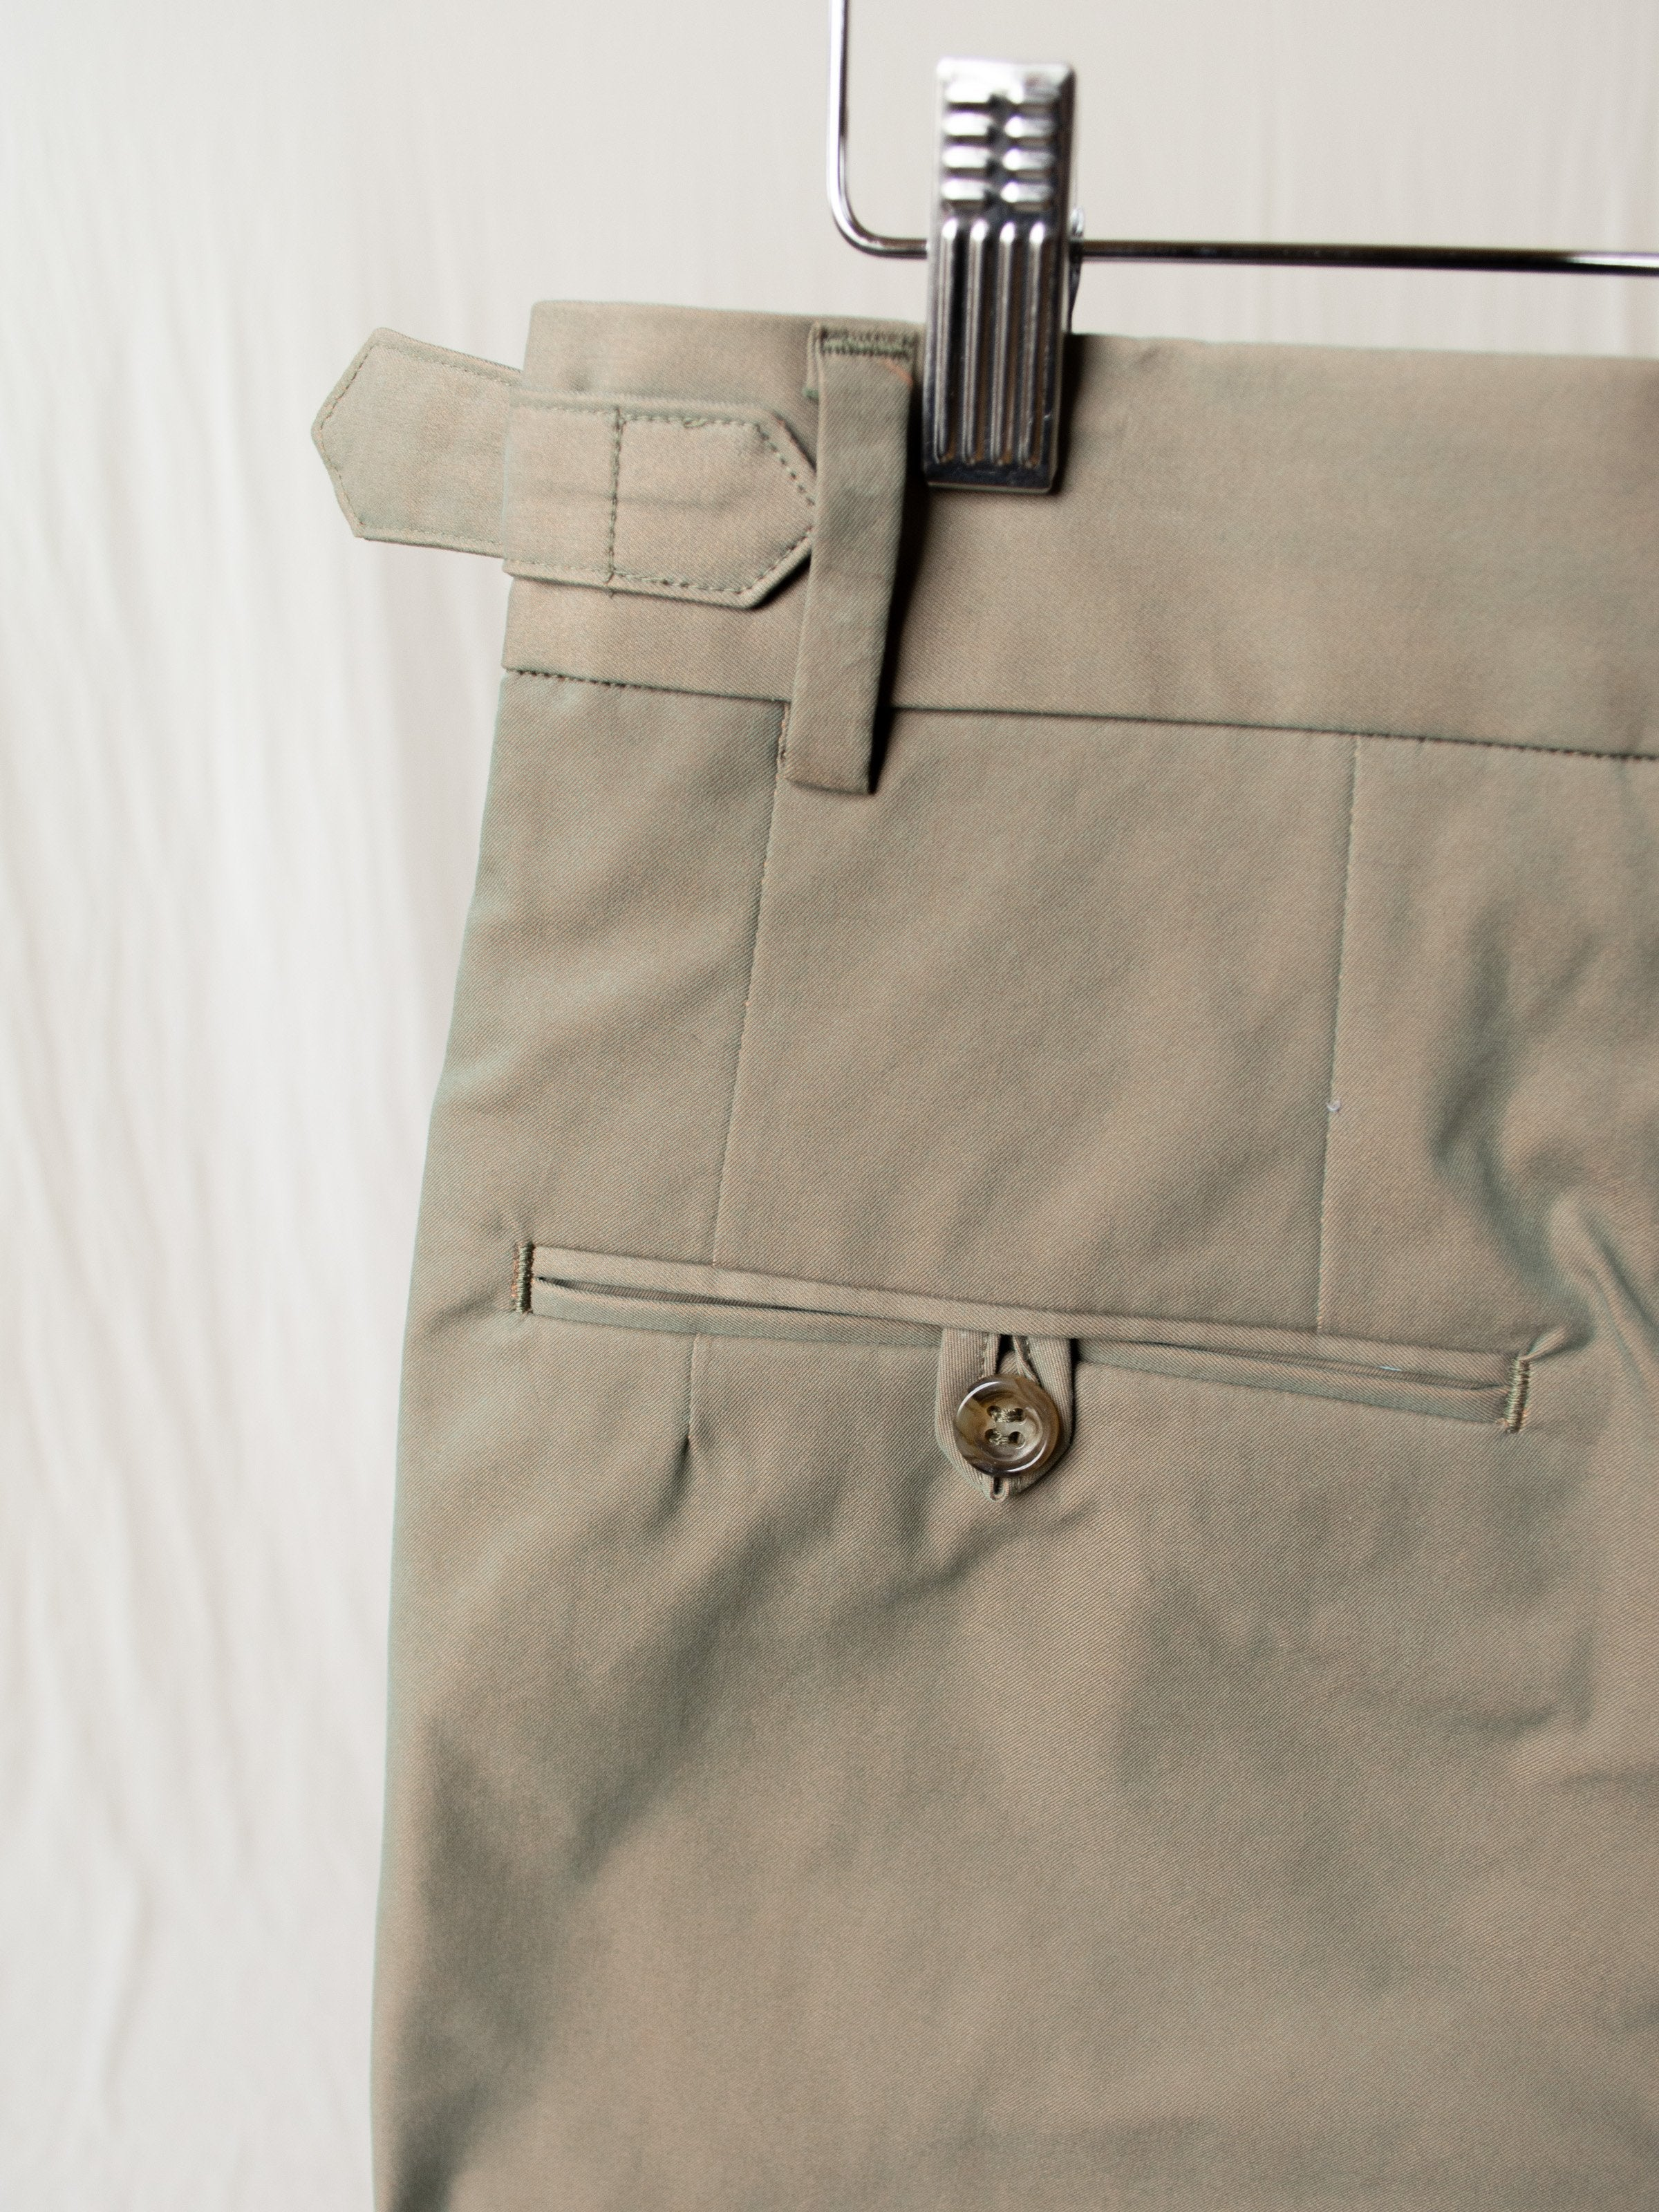 Namu Shop - A Vontade Officer Trouser - Olive Drab